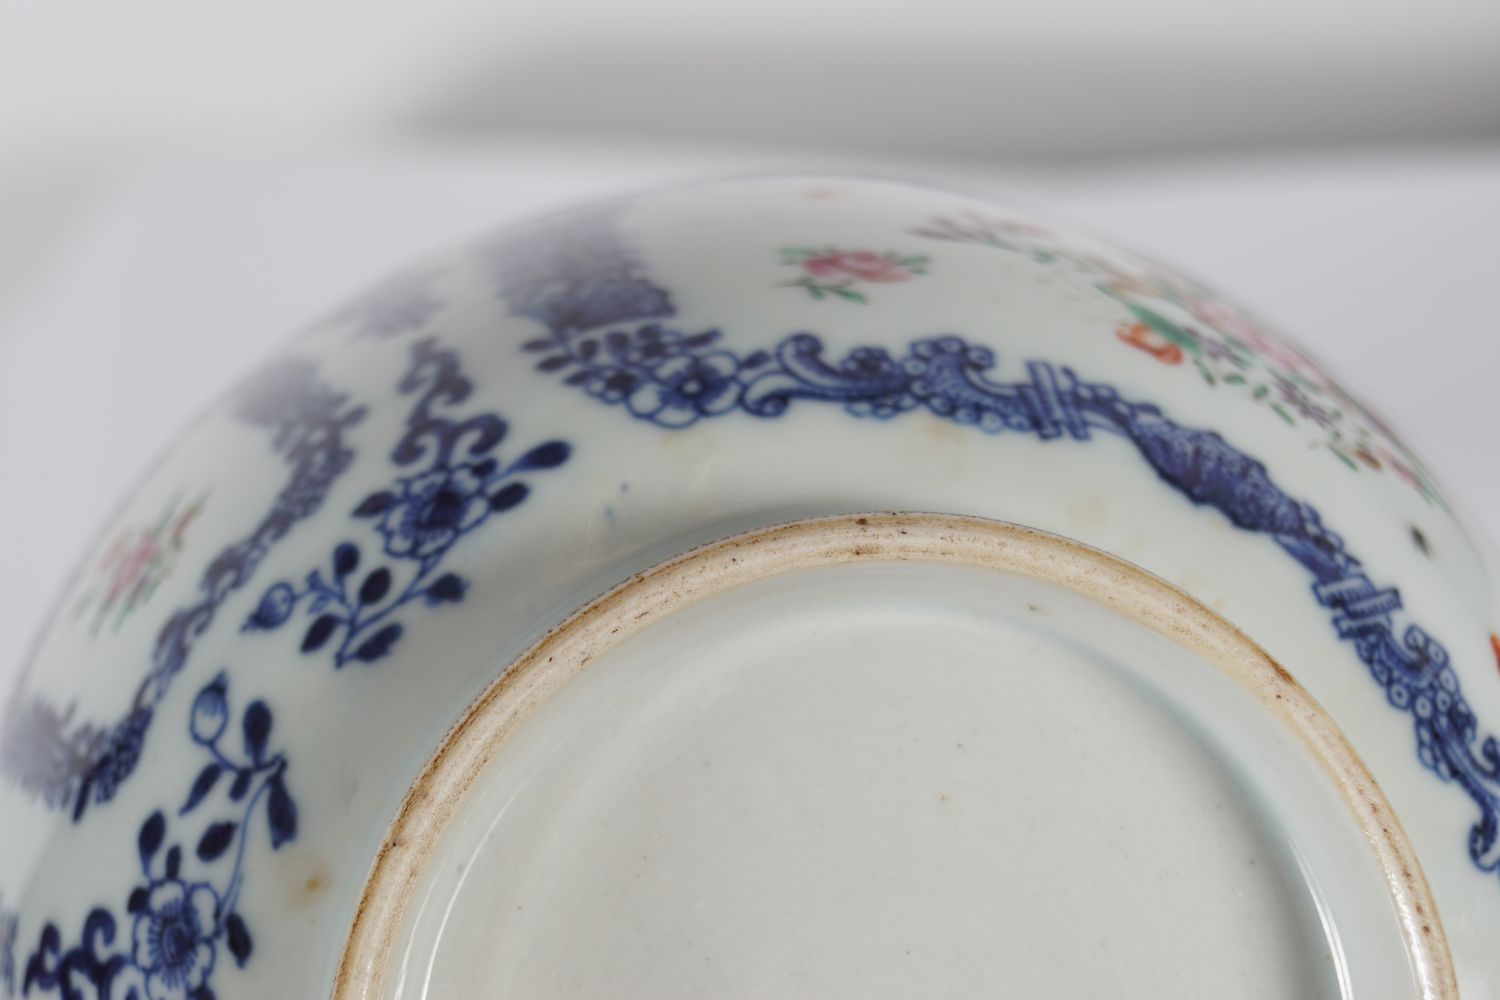 18TH-CENTURY CHINESE FAMILLE ROSE BOWL - Image 4 of 4